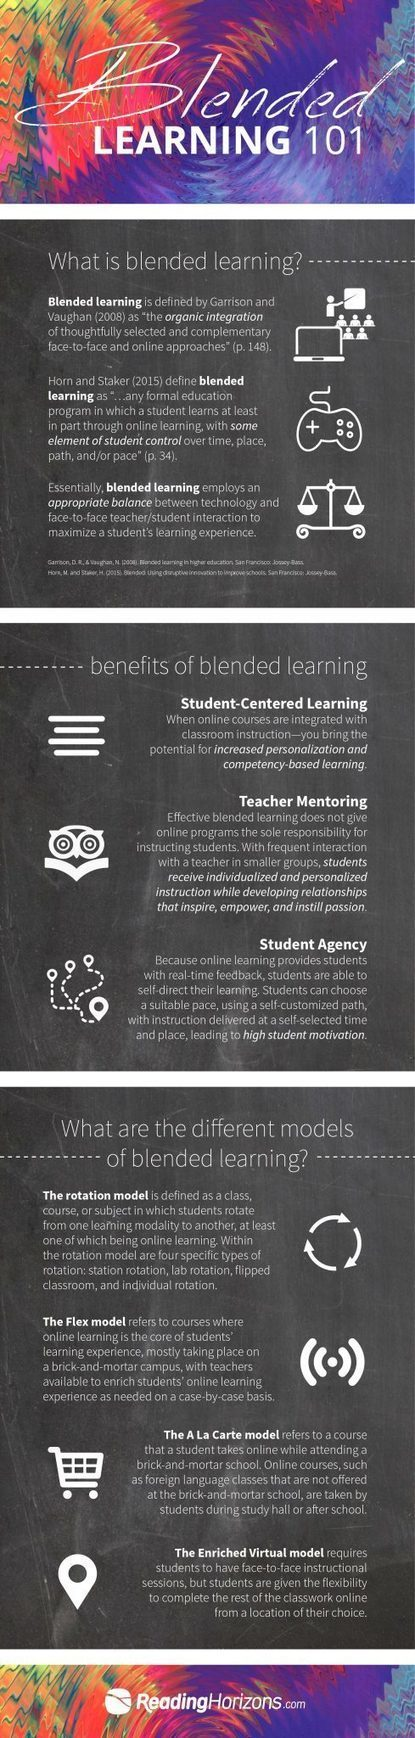 Blended Learning 101 Infographic | ICT tools for learning | Scoop.it